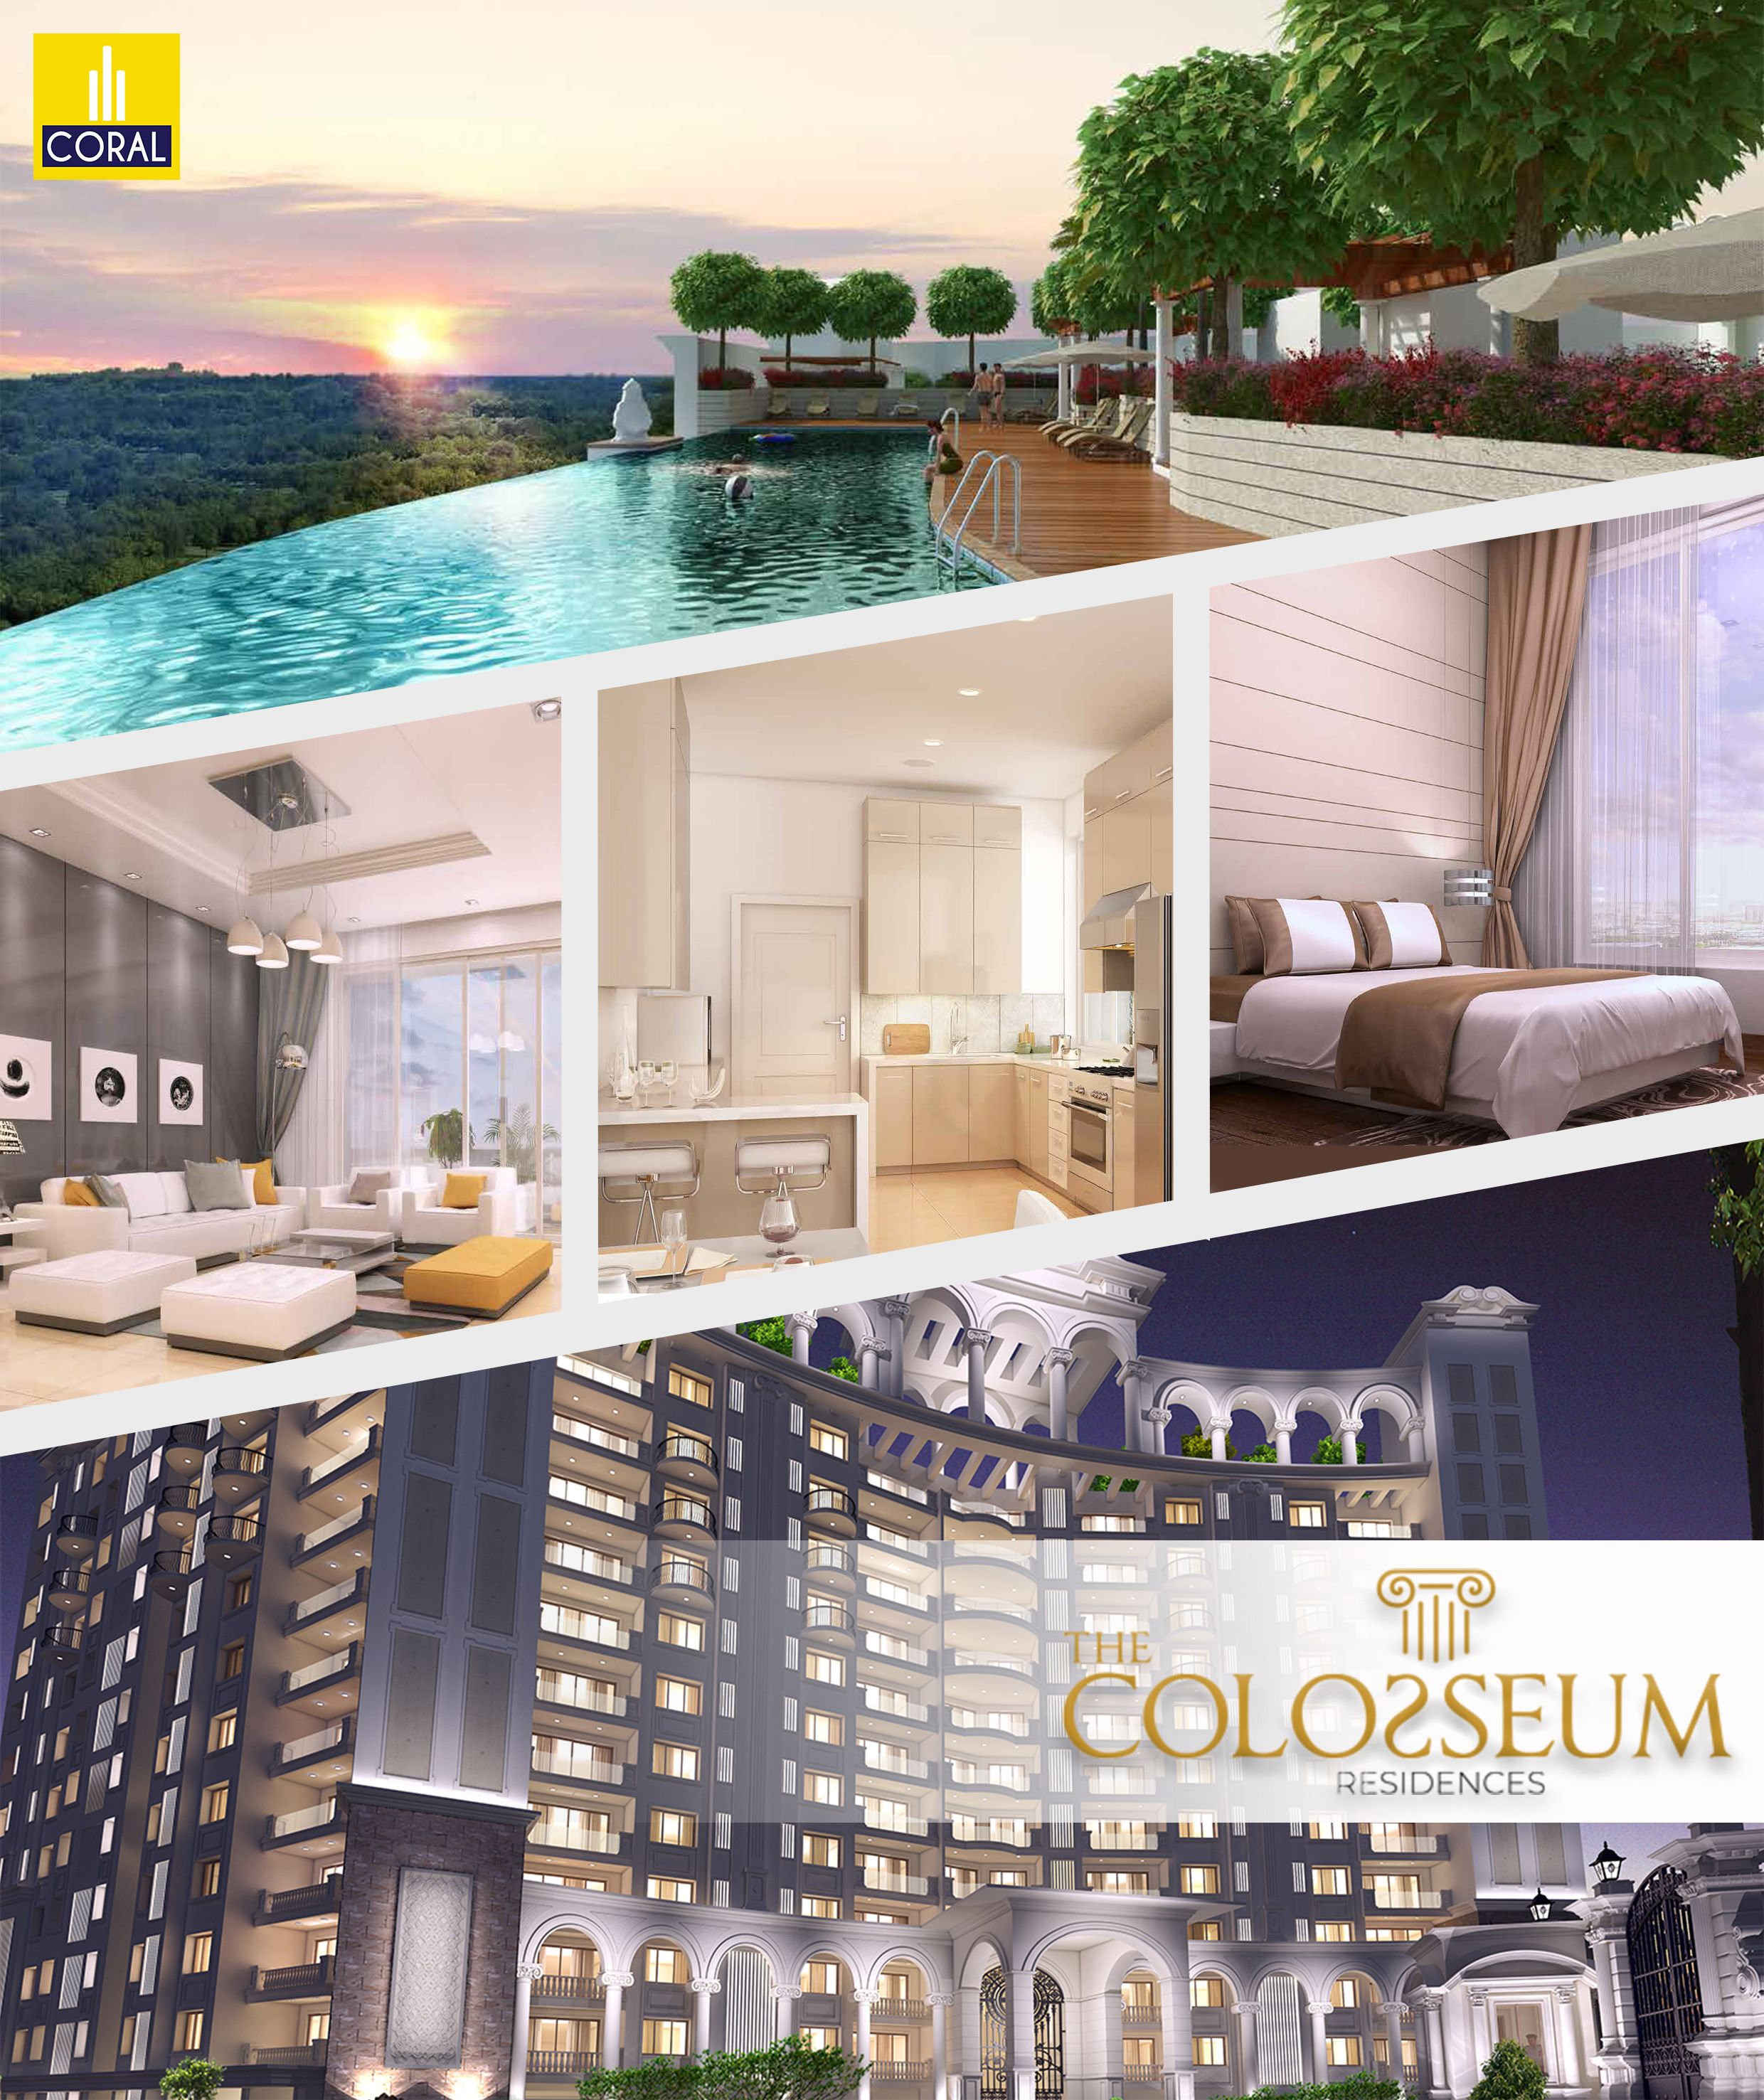 The Colosseum Residences Elegant 2 3 Bed Apartments For Sale Apartments For Sale Residences House Styles